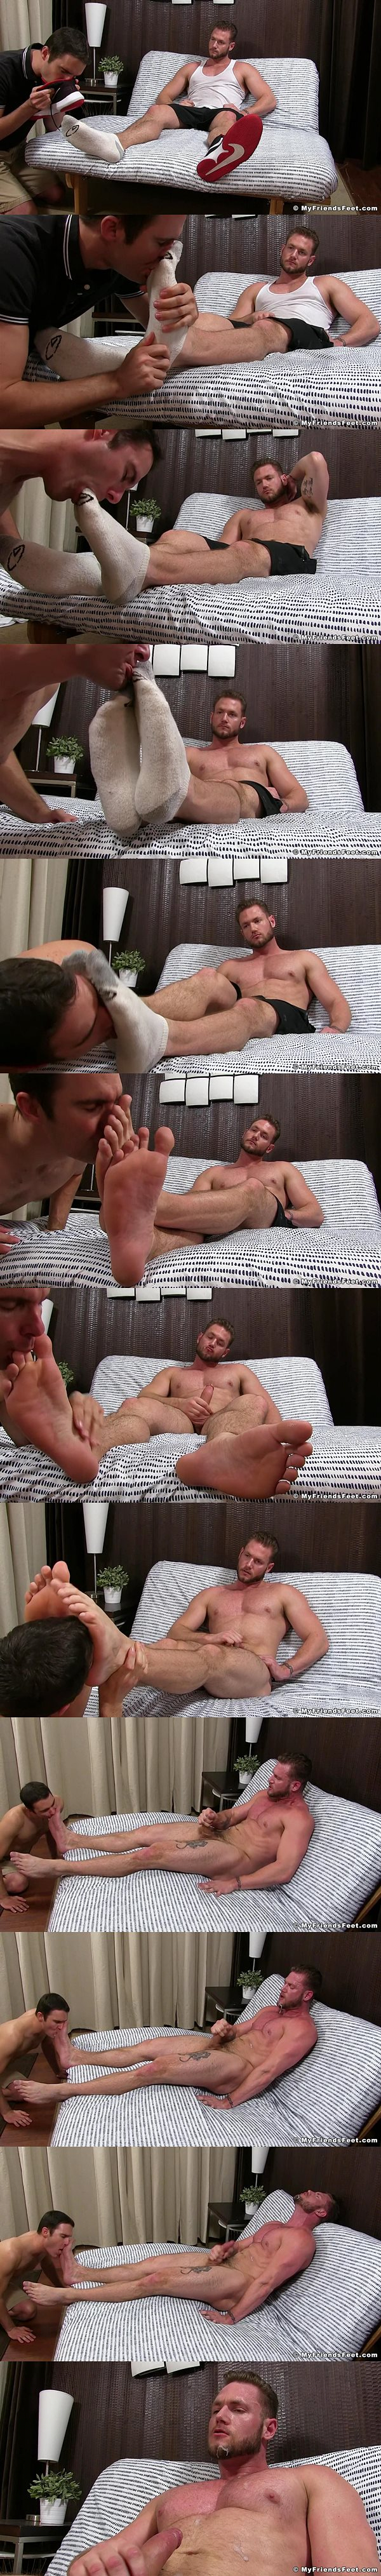 Porn star Ace Era foot and sock worshiped by Cameron Kincade at Myfriendsfeet 02